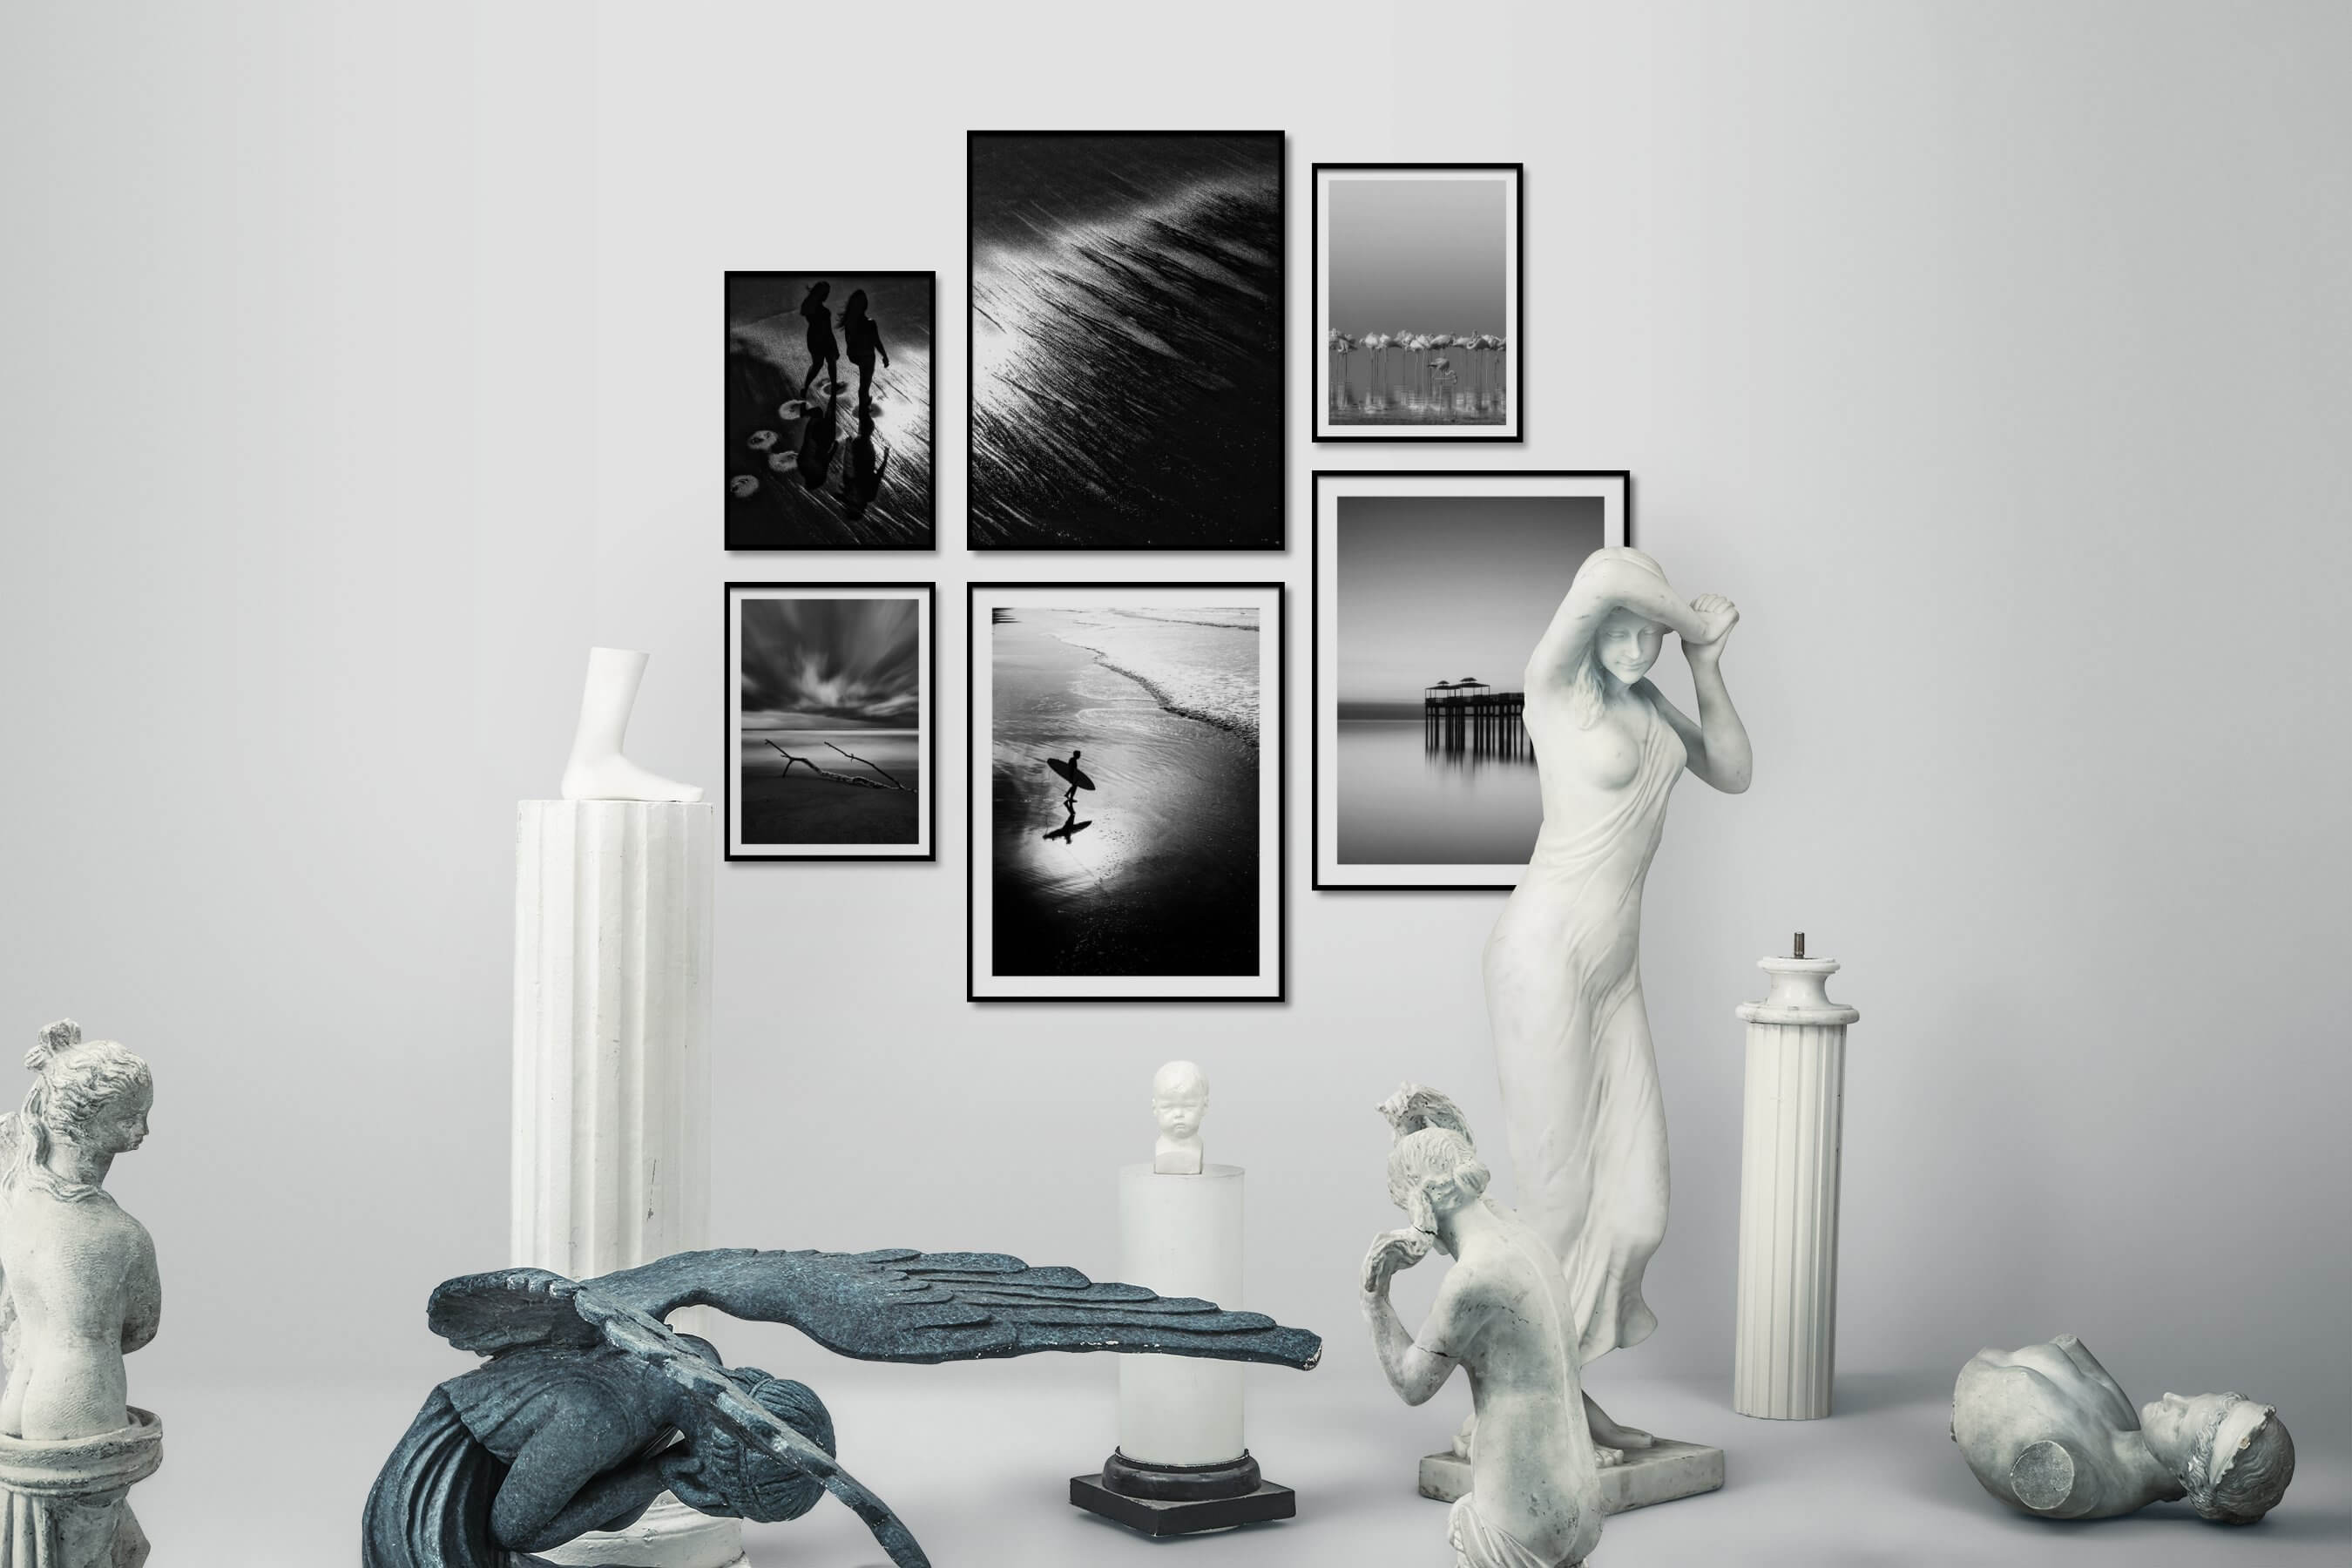 Gallery wall idea with six framed pictures arranged on a wall depicting Black & White, For the Moderate, Beach & Water, Dark Tones, For the Minimalist, Animals, and Mindfulness